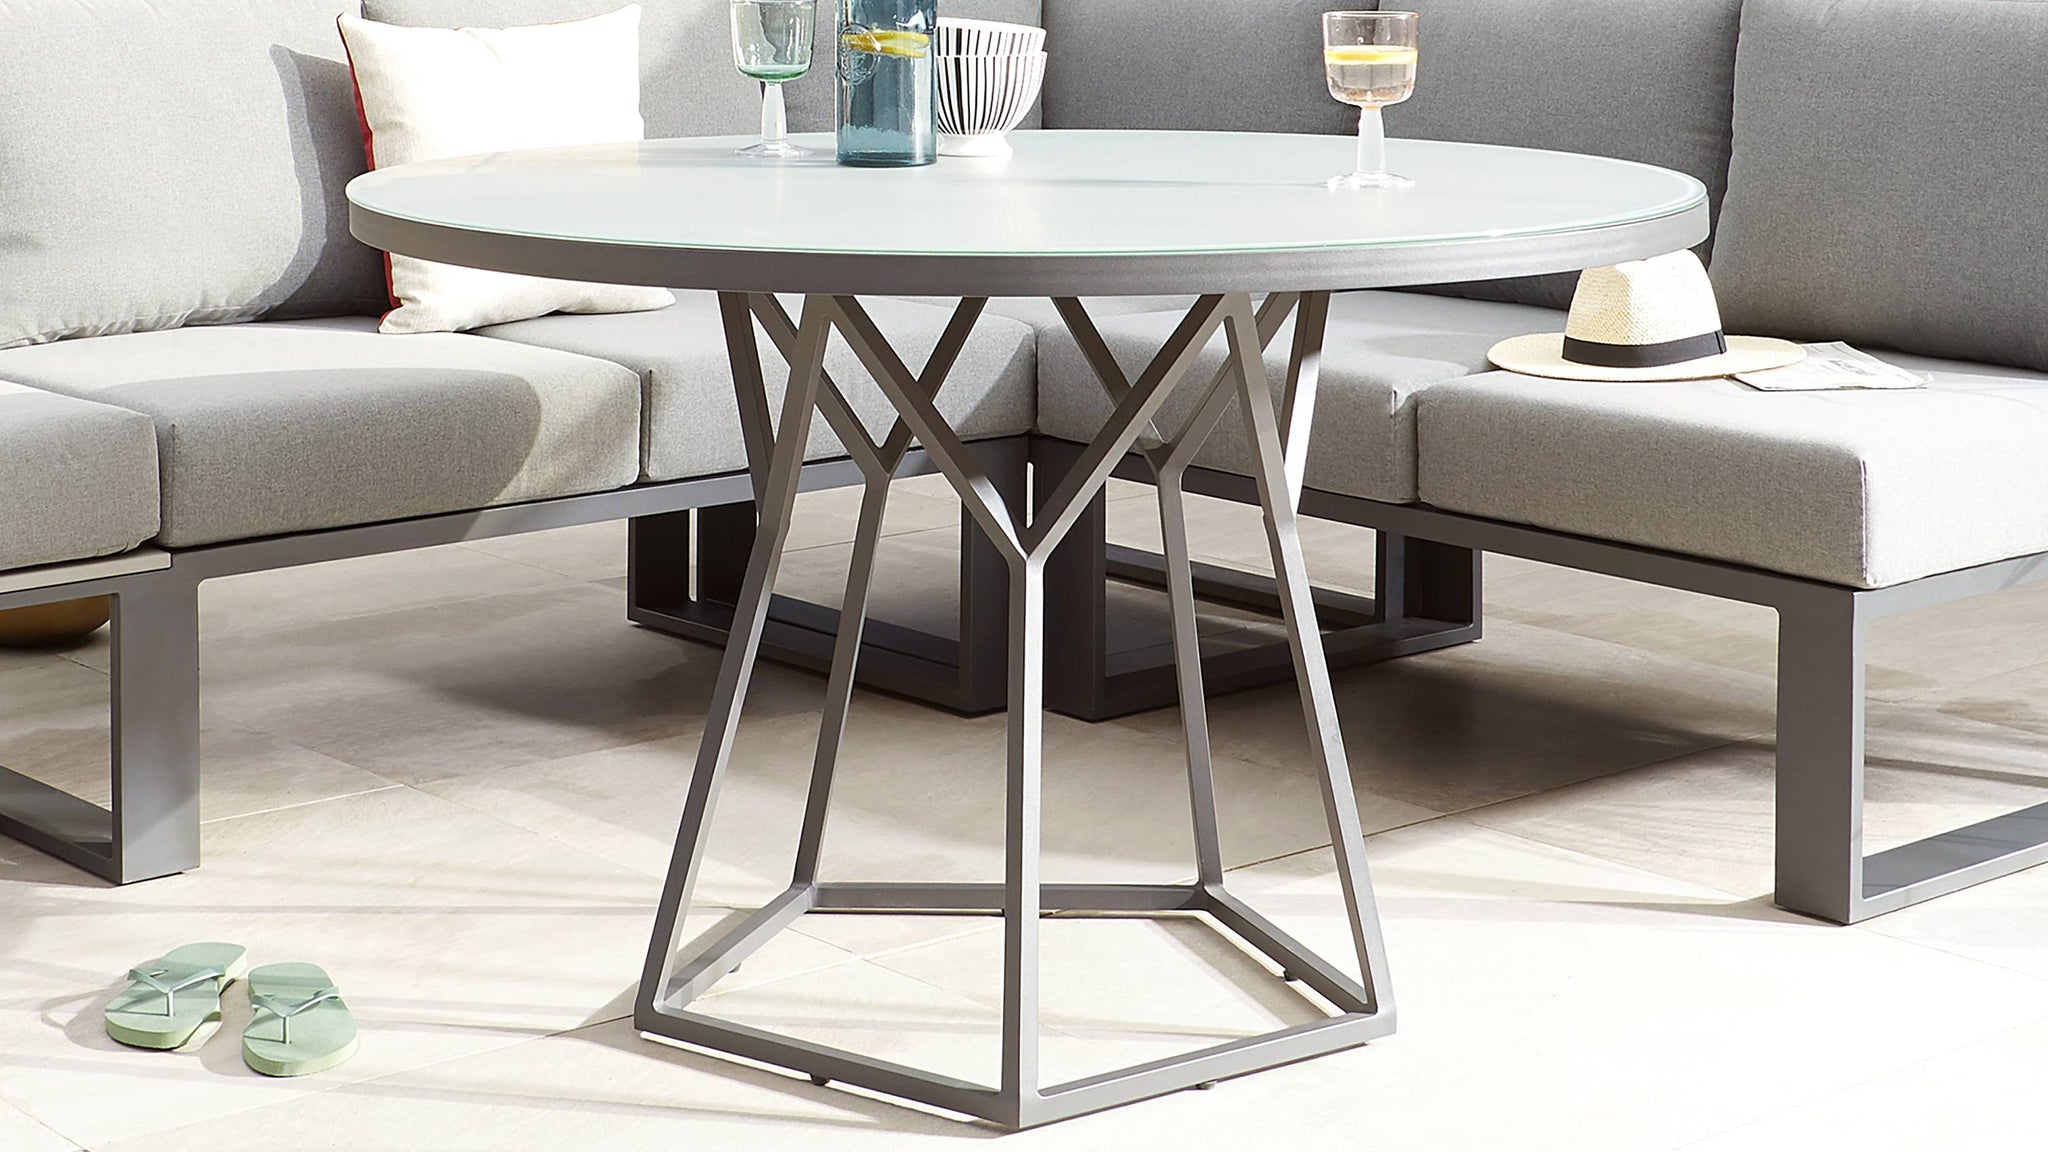 Round garden dining table sets